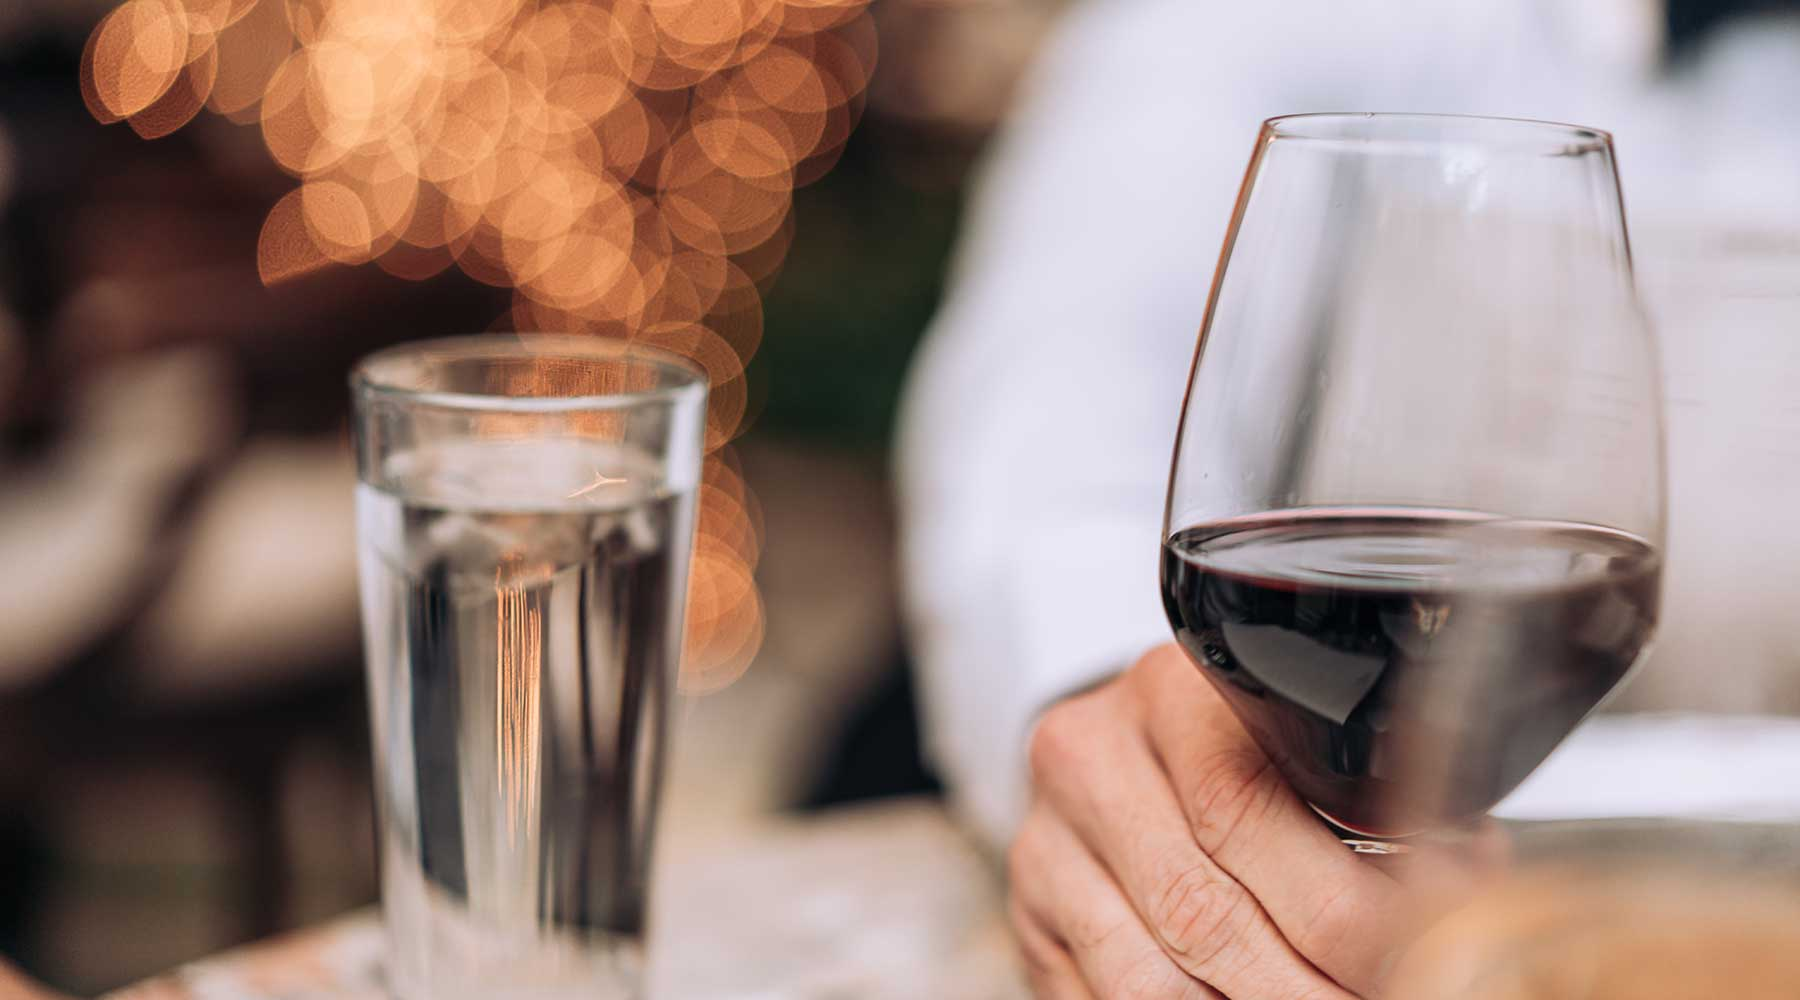 Man at restaurant, drinking a glass of red wine. Glass of water next to wine..